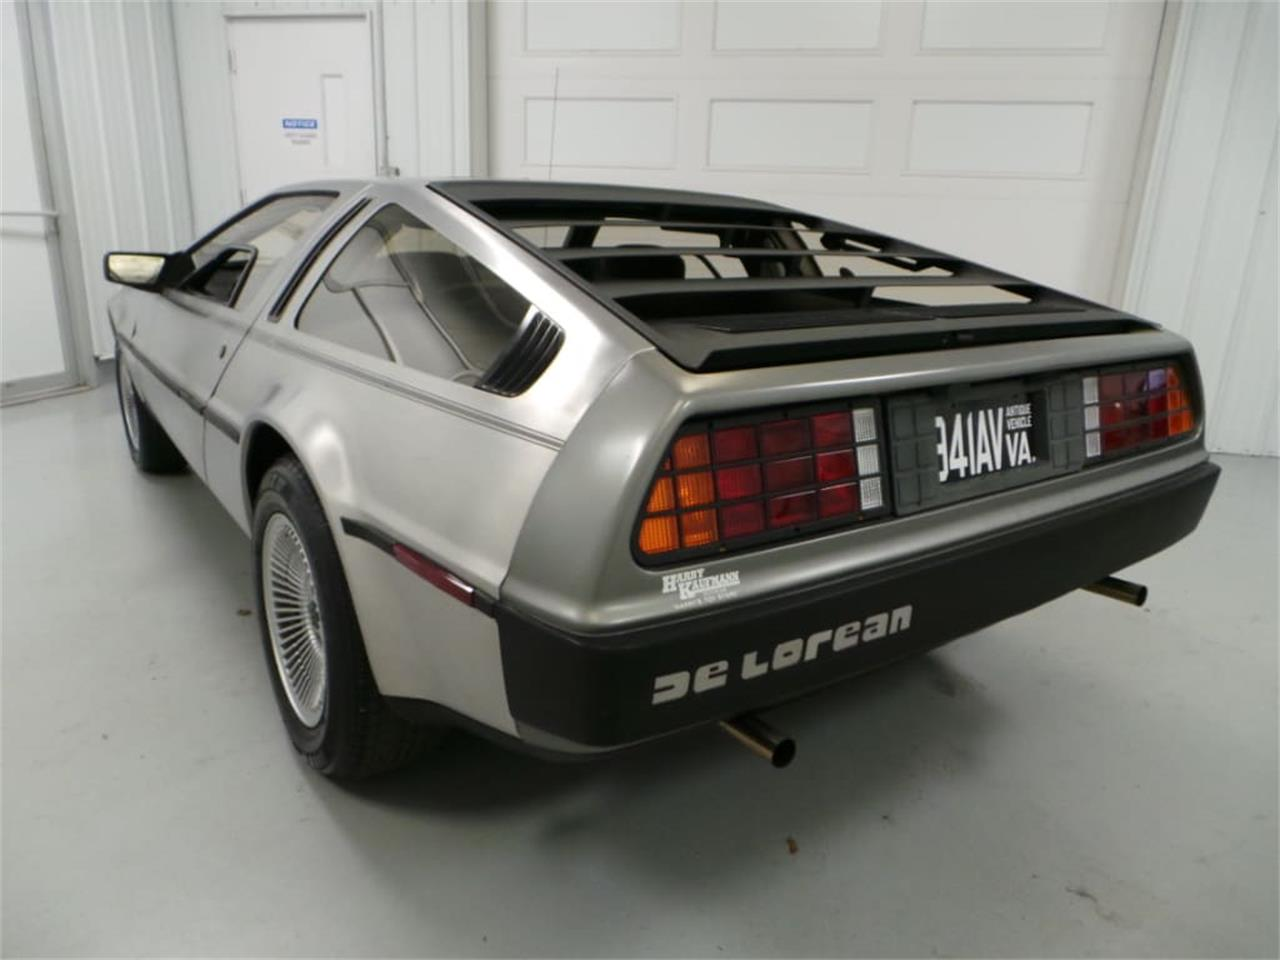 Large Picture of '81 DeLorean DMC-12 located in Christiansburg Virginia Offered by Duncan Imports & Classic Cars - JLCI